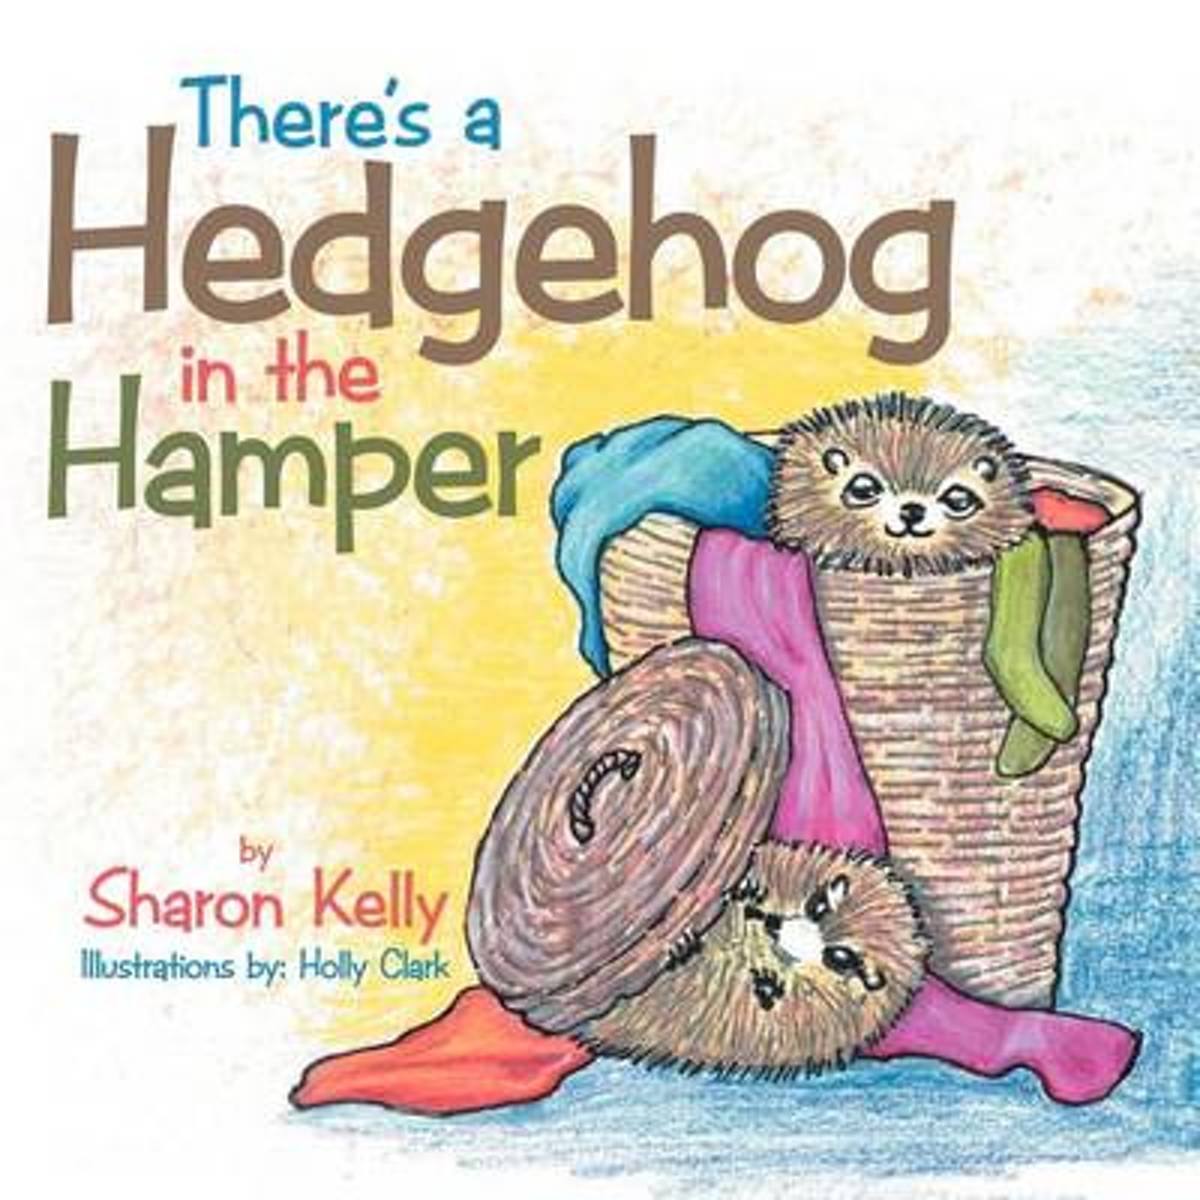 There's a Hedgehog in the Hamper